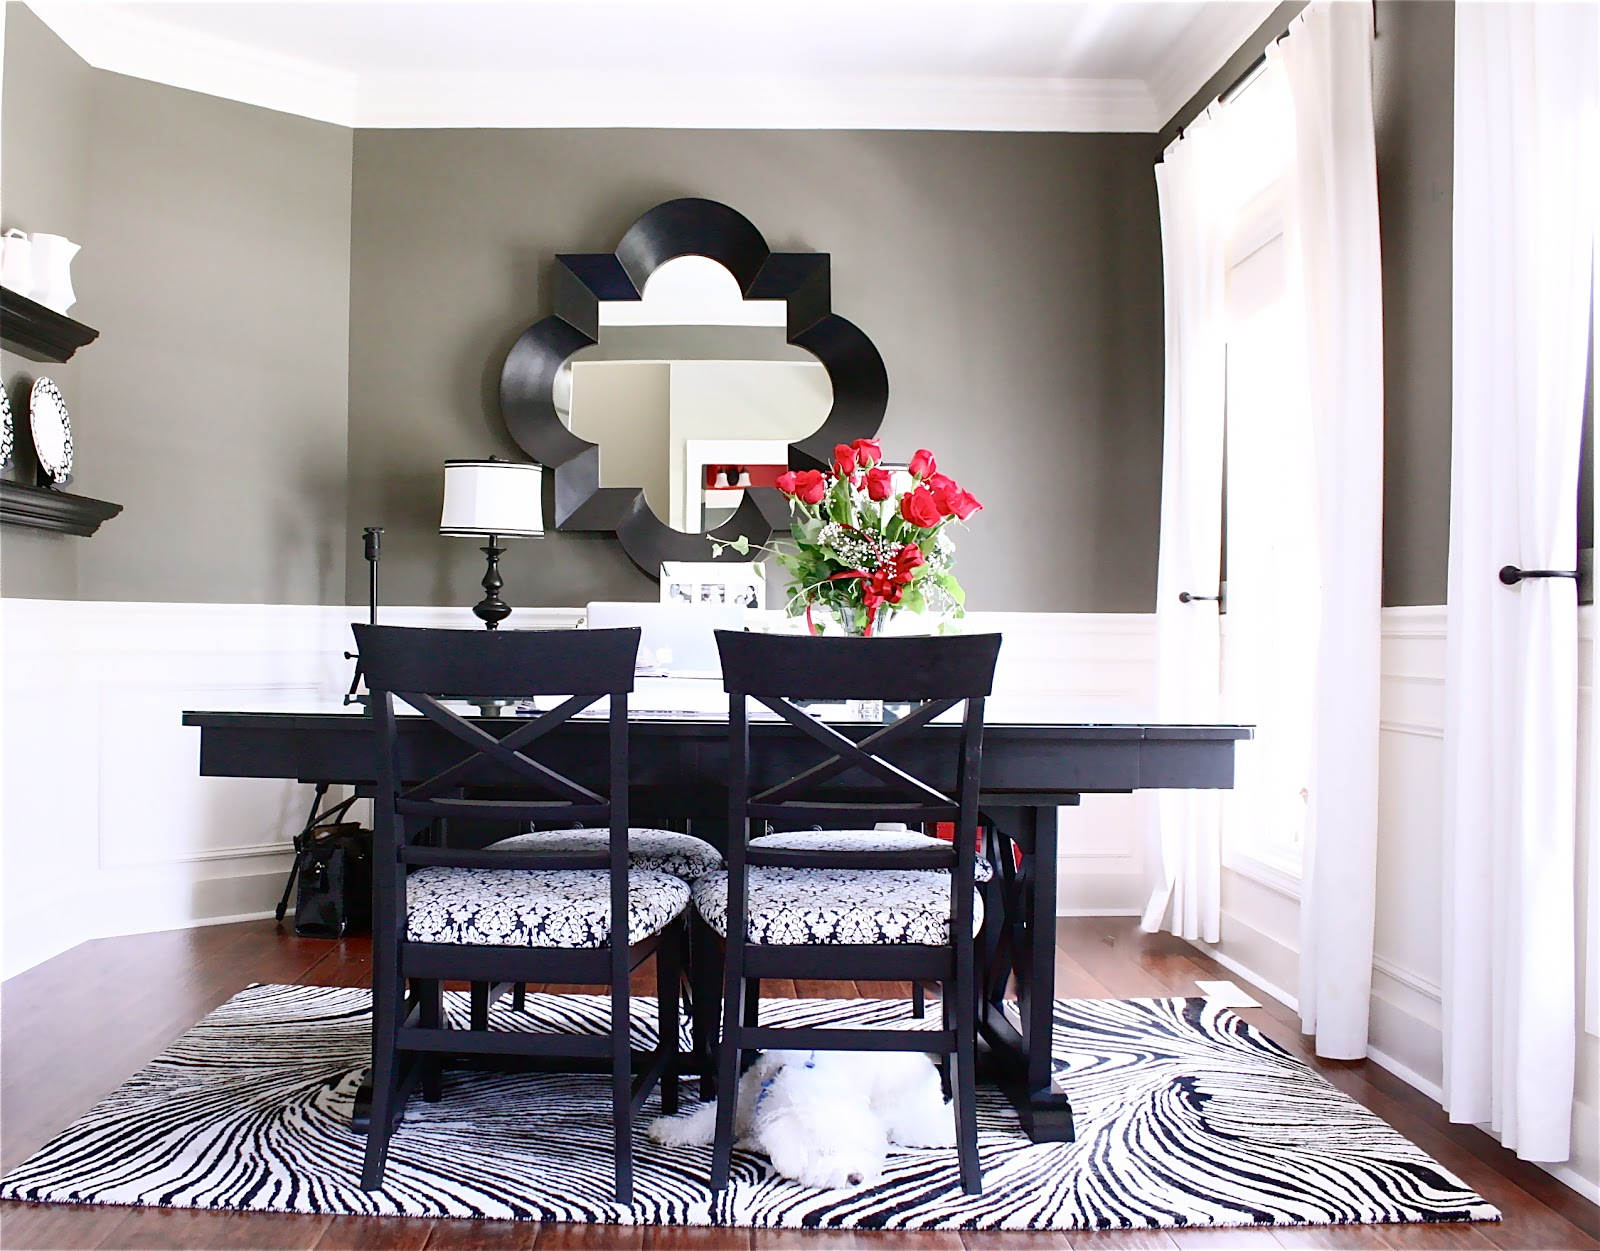 The Yellow Cape Cod: My Home Office Dining Room